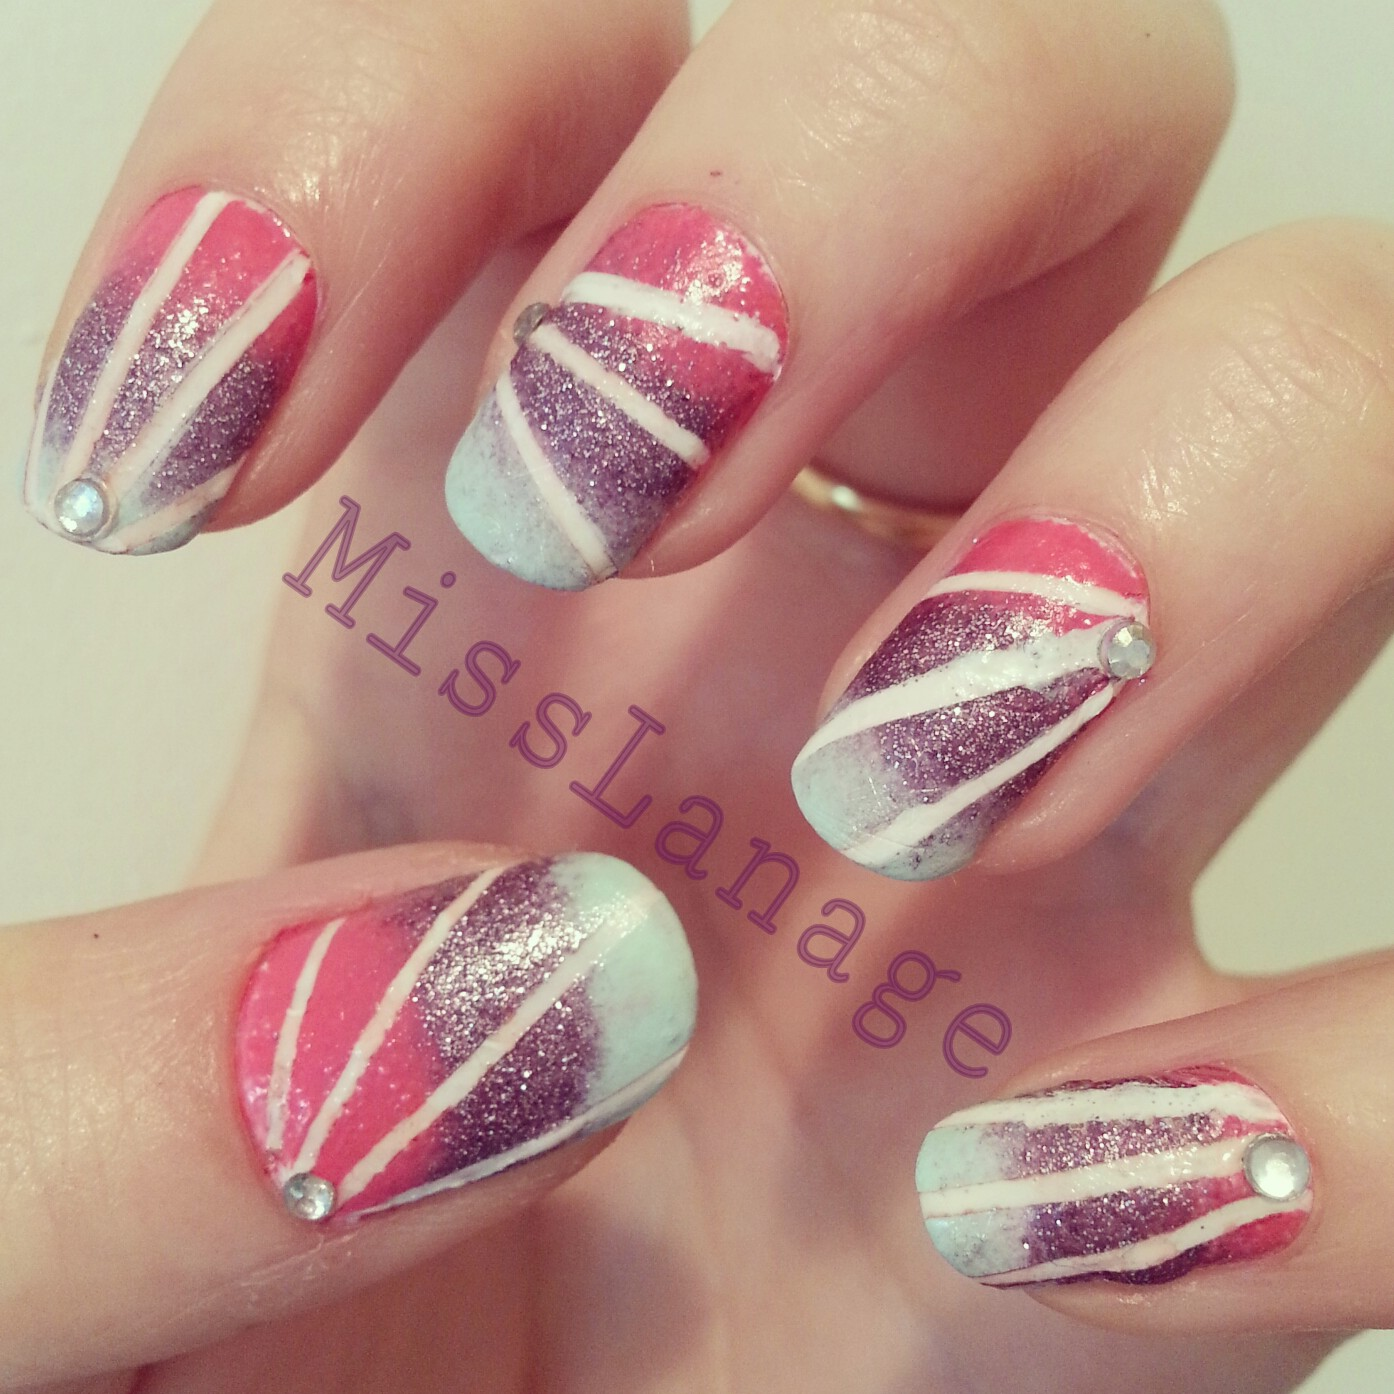 25 Beautiful Starburst Nails with Tape 2015/16 25 Beautiful Starburst Nails with Tape 2015/16 starburst nails with tape 21